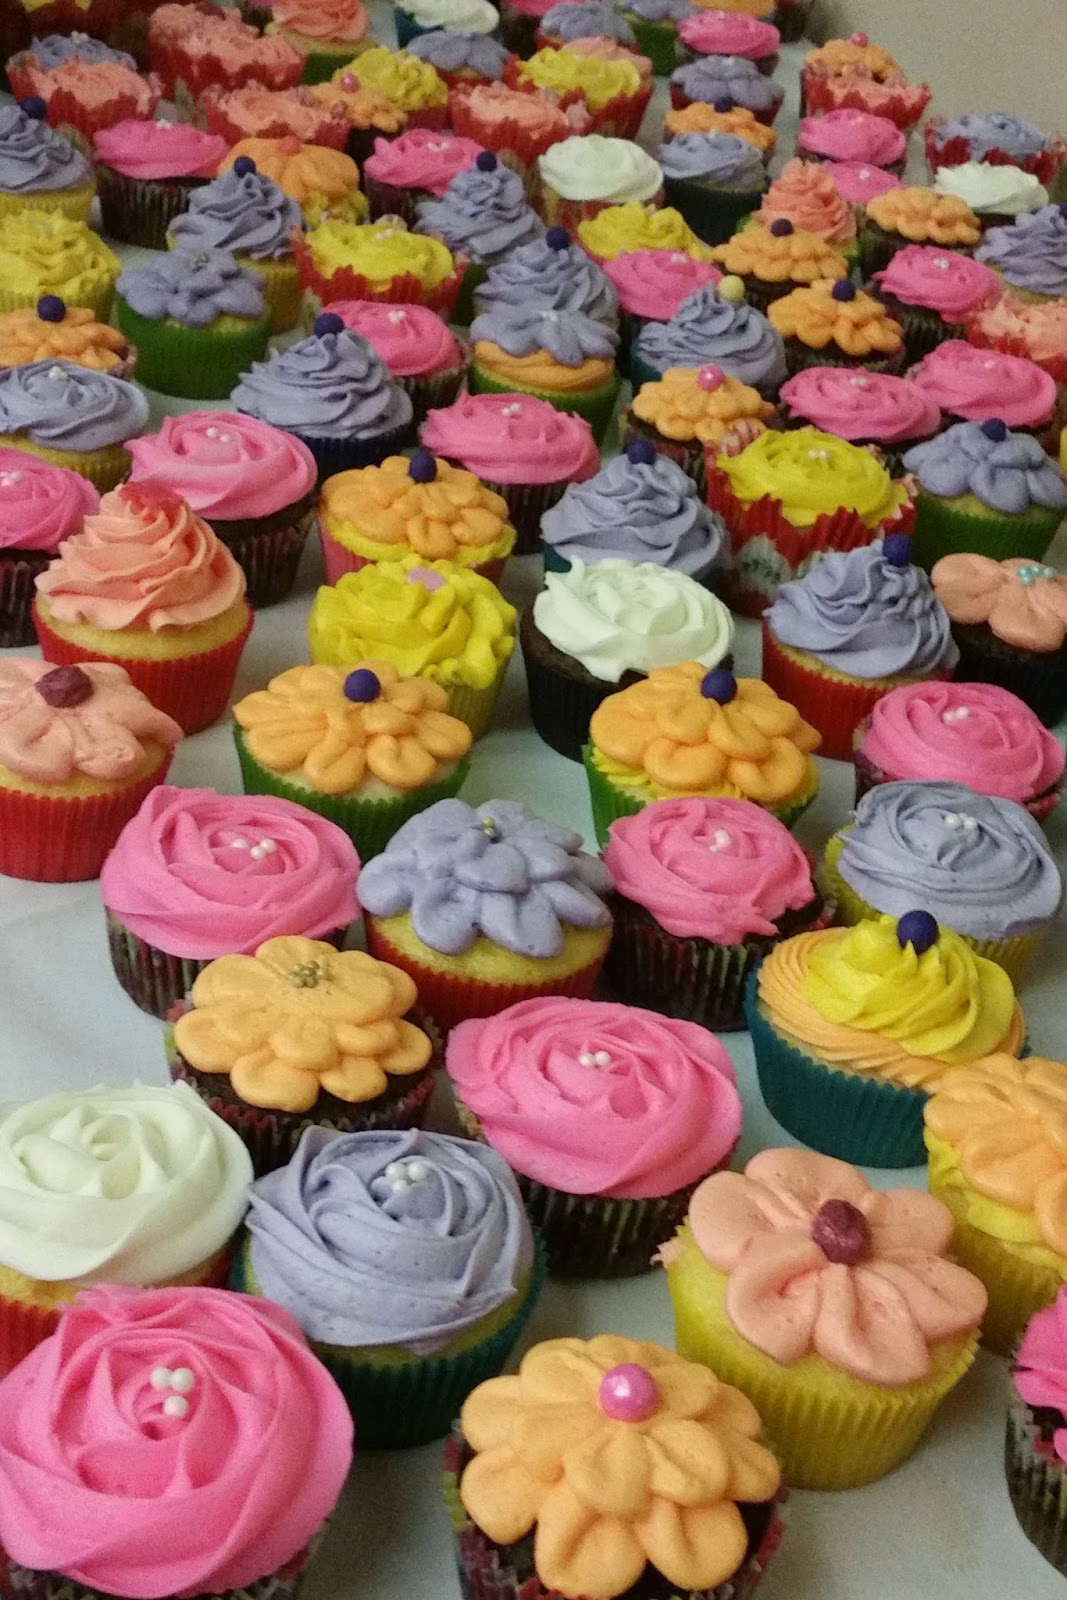 Cupcakes and treats by terrilu spring flower cupcakes 200 spring flower cupcakes i made for a dear friends celebration of life all frosting no fondant used on these beautiful spread of flower cupcakes izmirmasajfo